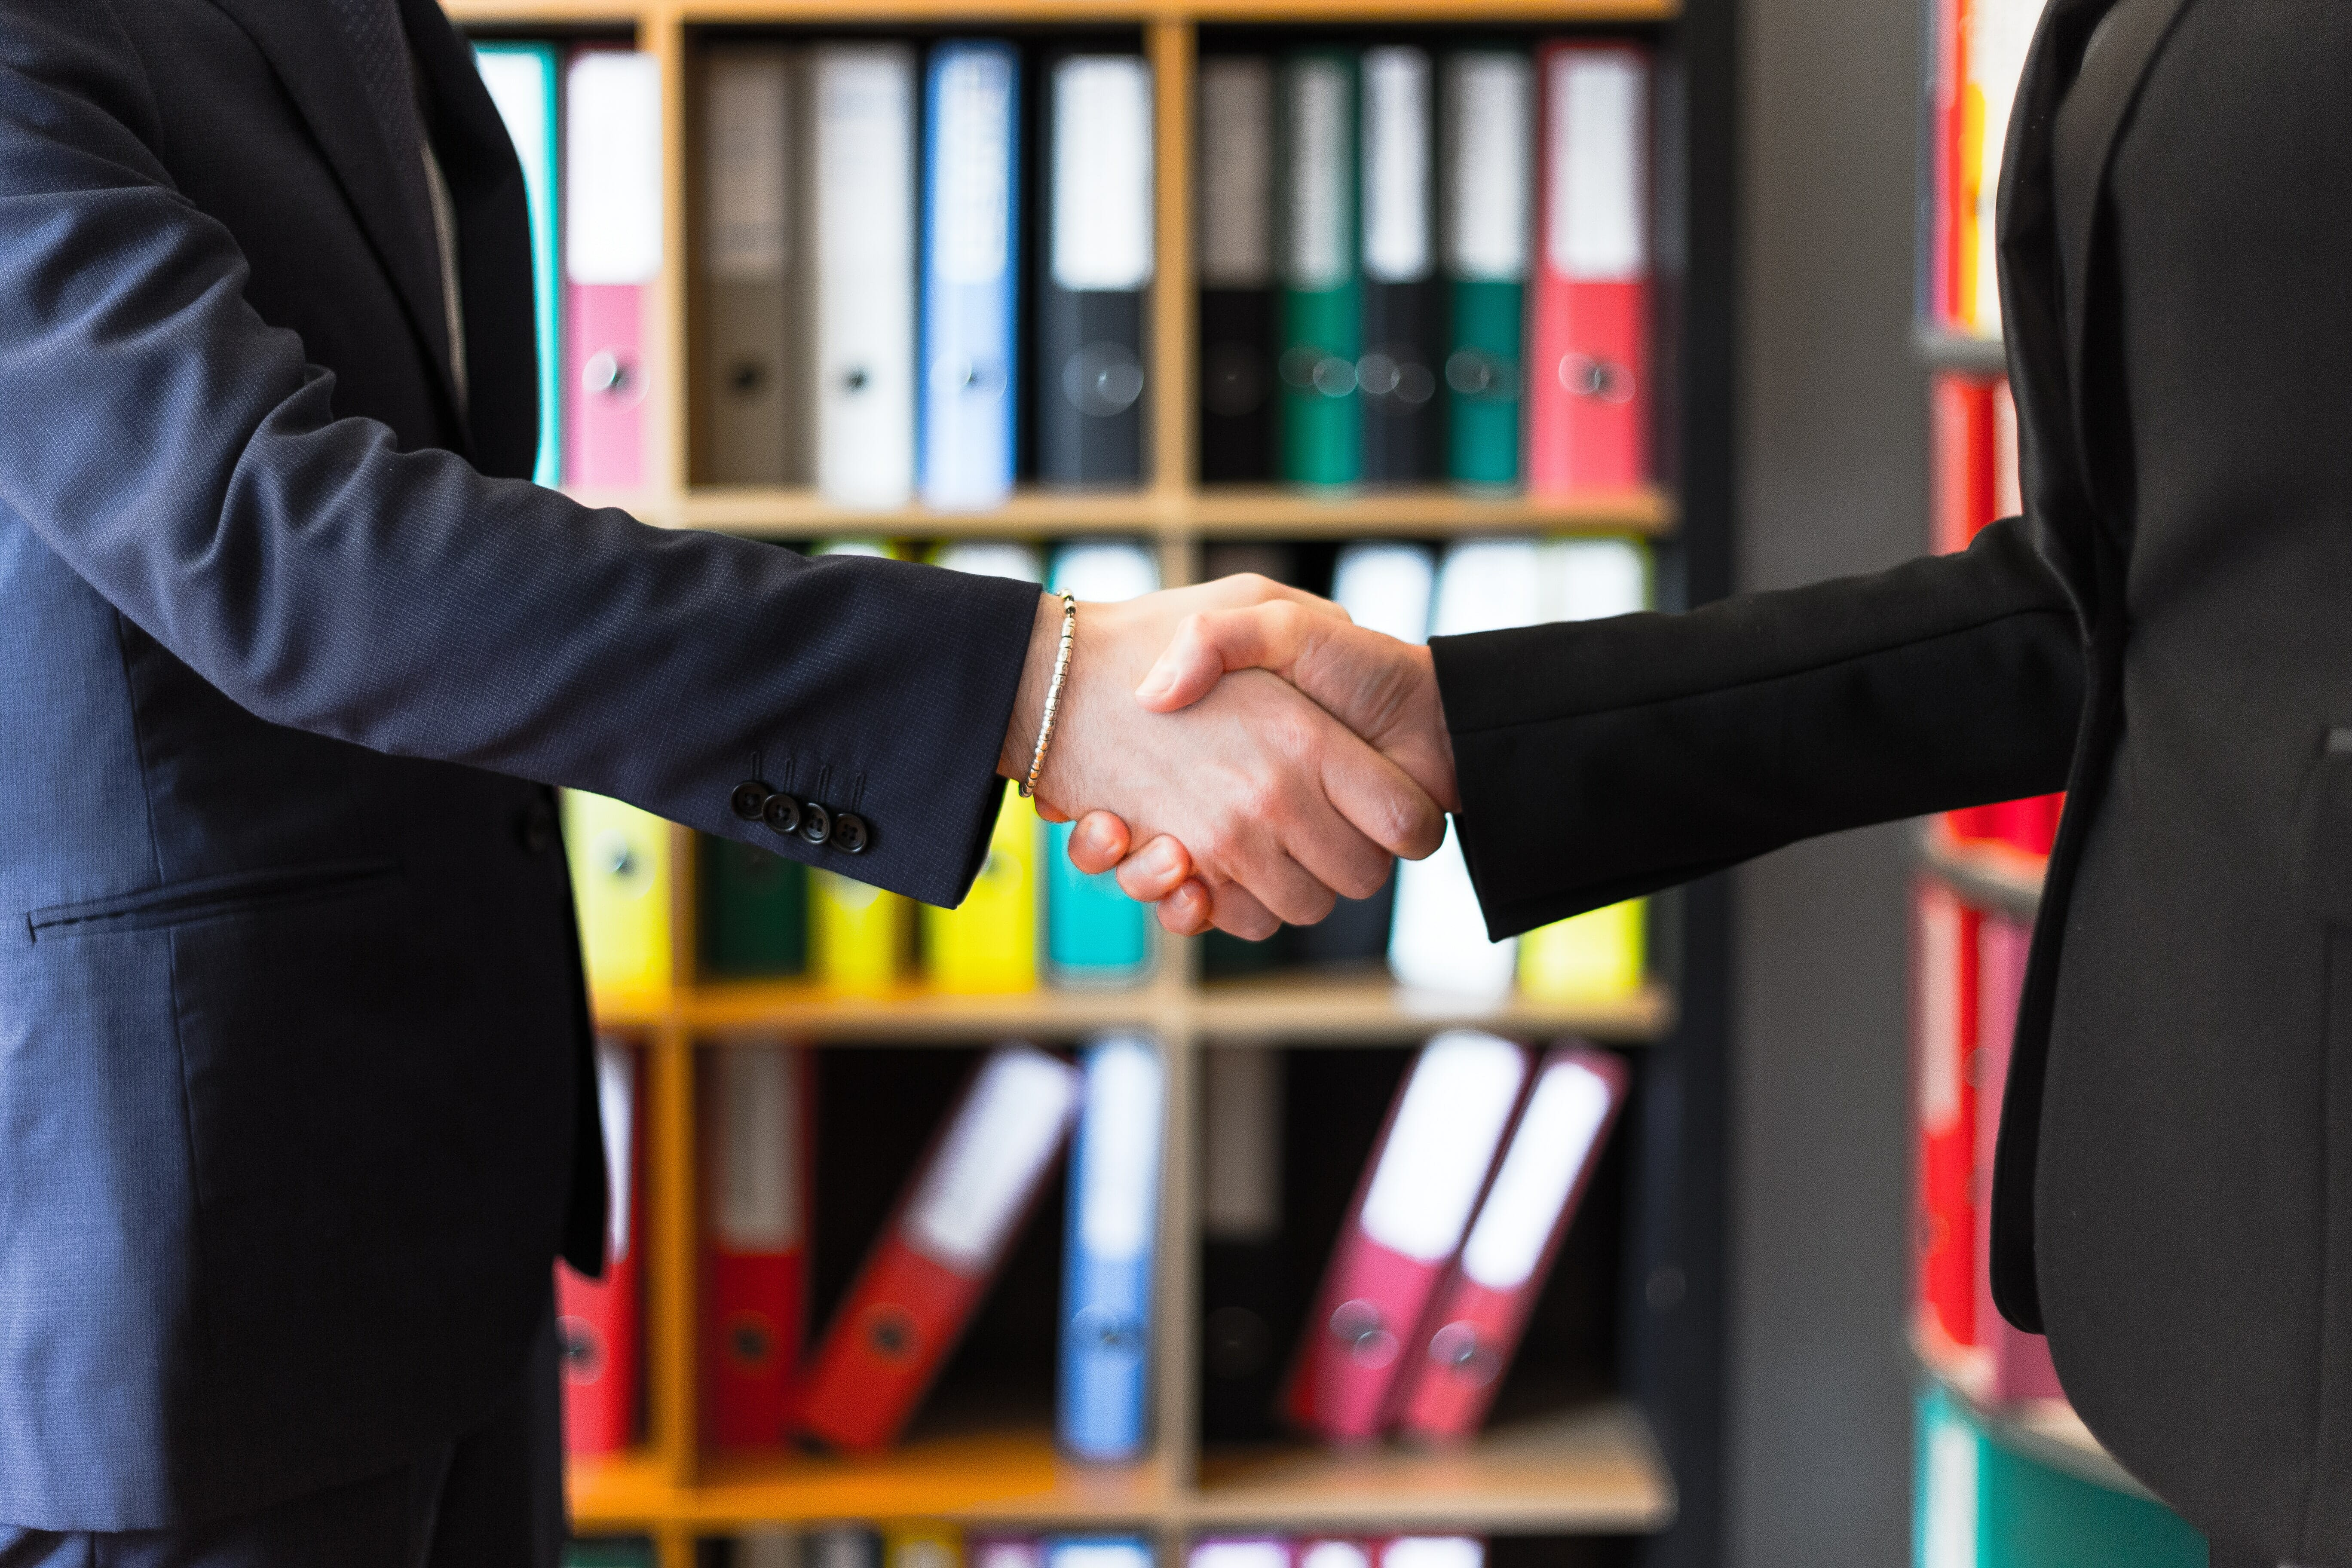 How to Get a Job Offer Before Graduation